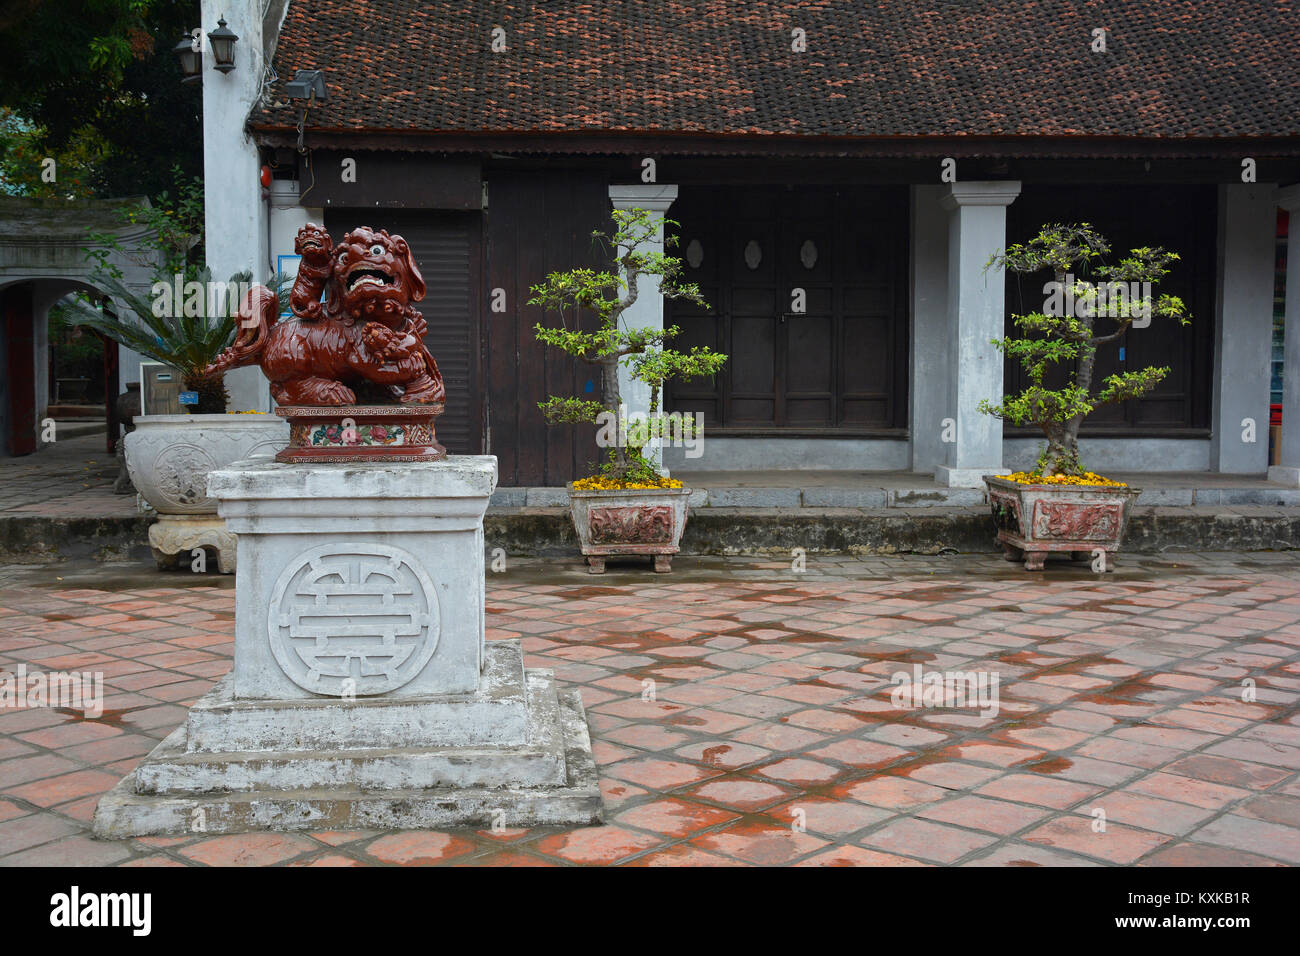 A Guardian Lion, also called a Foo Dog, in the Temple of Literature in Hanoi, Vietnam - Stock Image